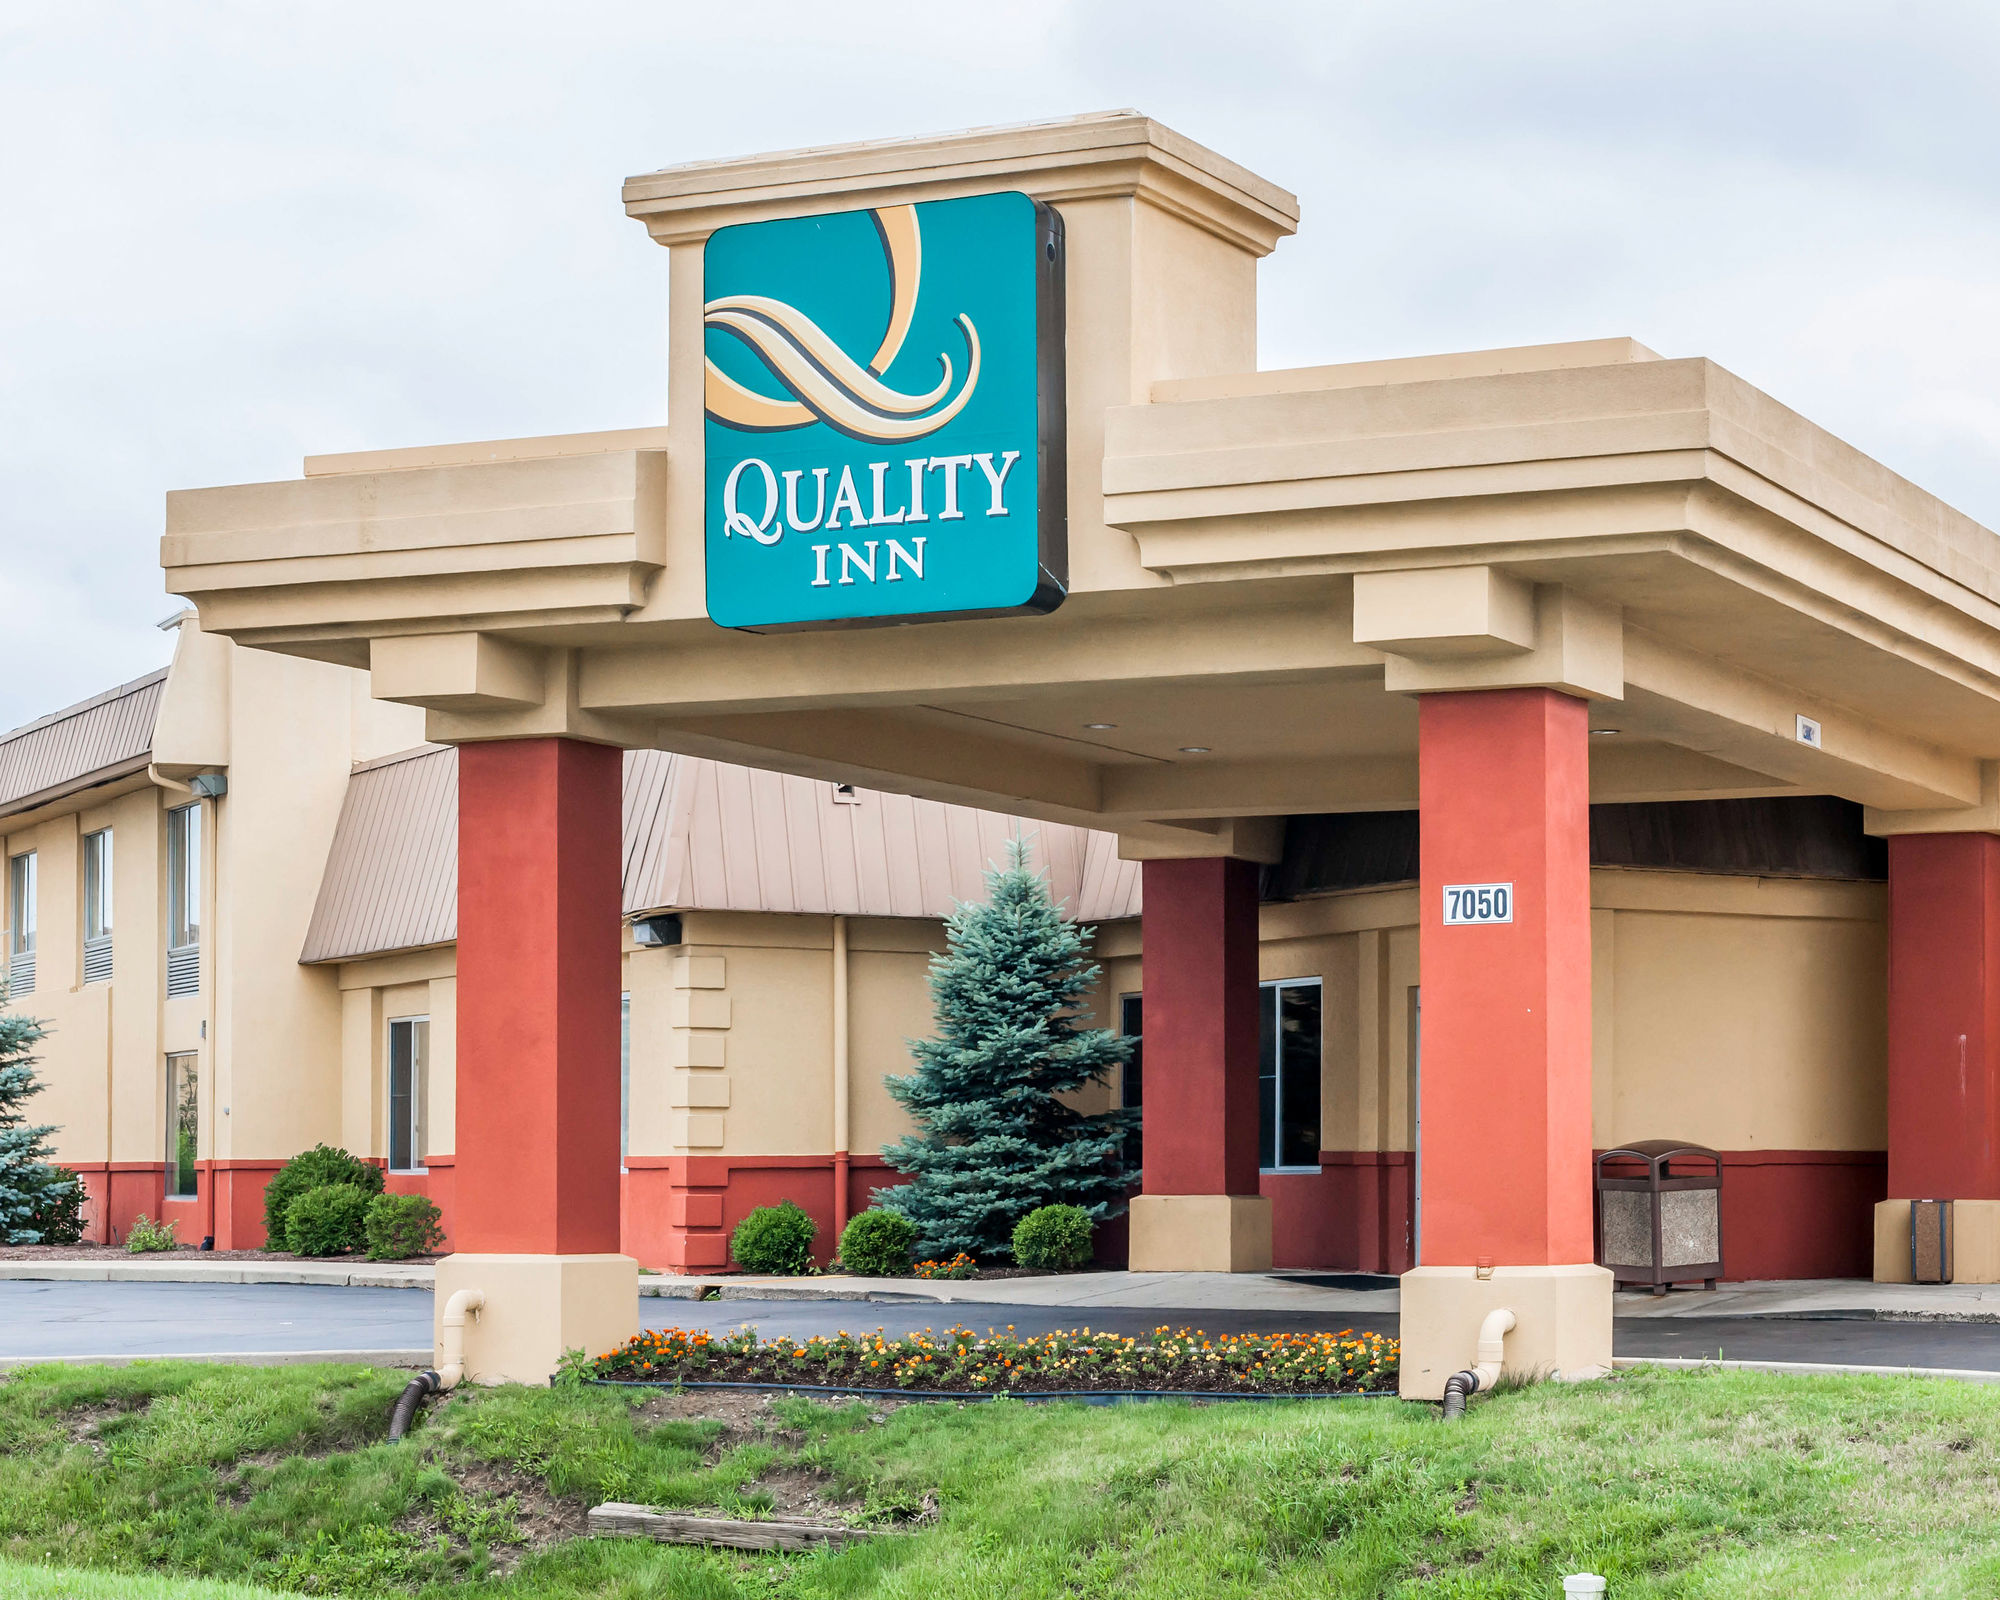 Quality Inn by Choice Hotels: Save up to 20% on participating hotels when you reserve and pay for your next trip in advance. The reservation must be made at least 7, 14, 21 or 30 days in advance. Eligibility restricted to U.S. and Canadian residents.